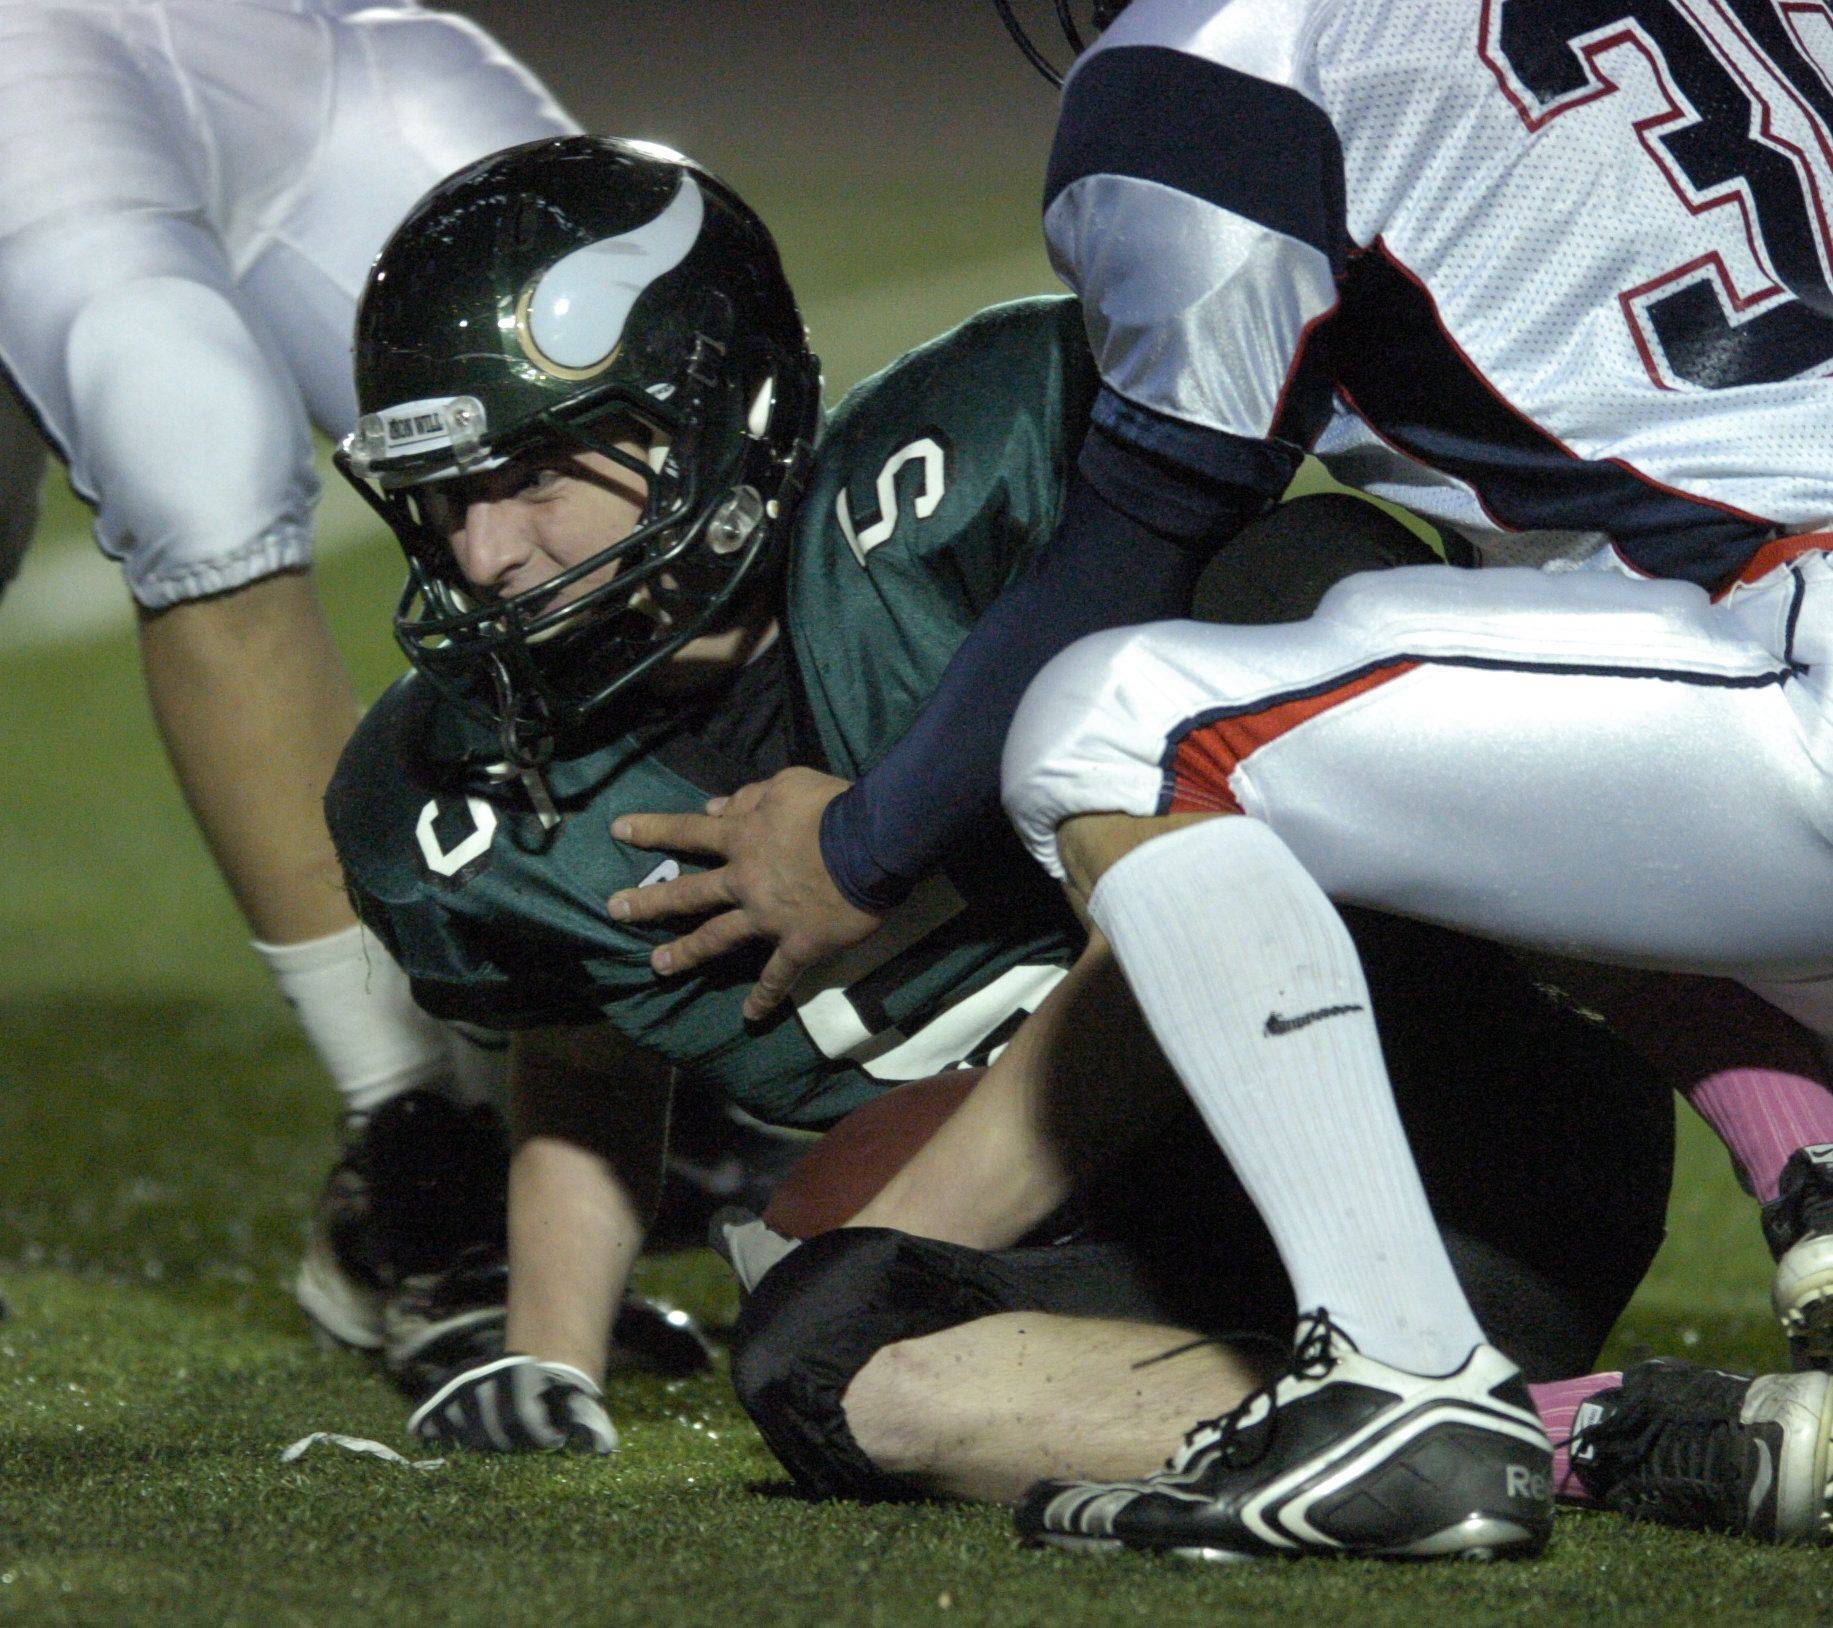 Week 9 - Photos from the Conant vs Fremd football game in Palatine on October 22nd.